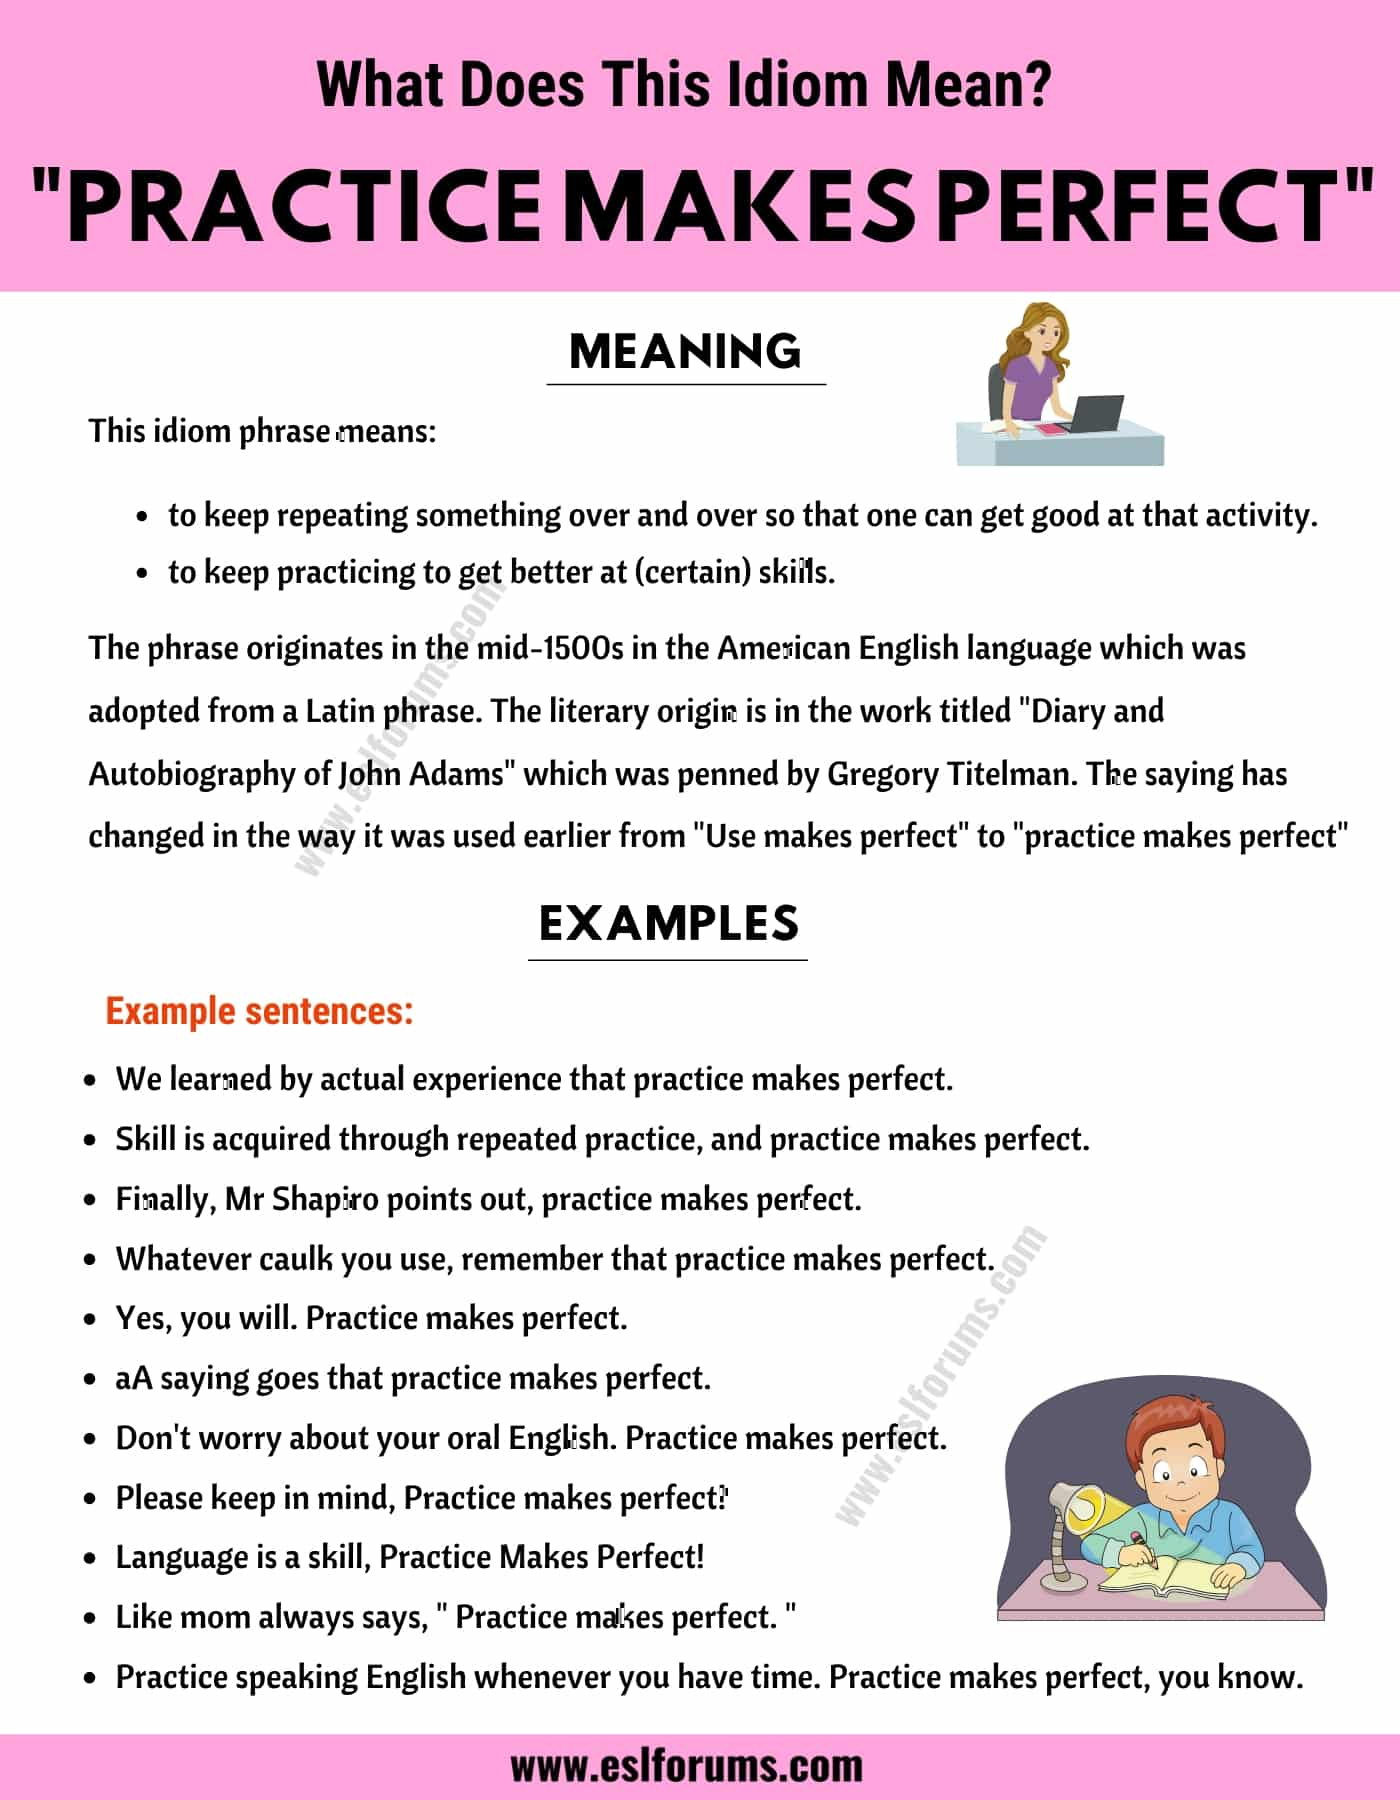 Practice Makes Perfect: What Does This Interesting Idiom Mean?